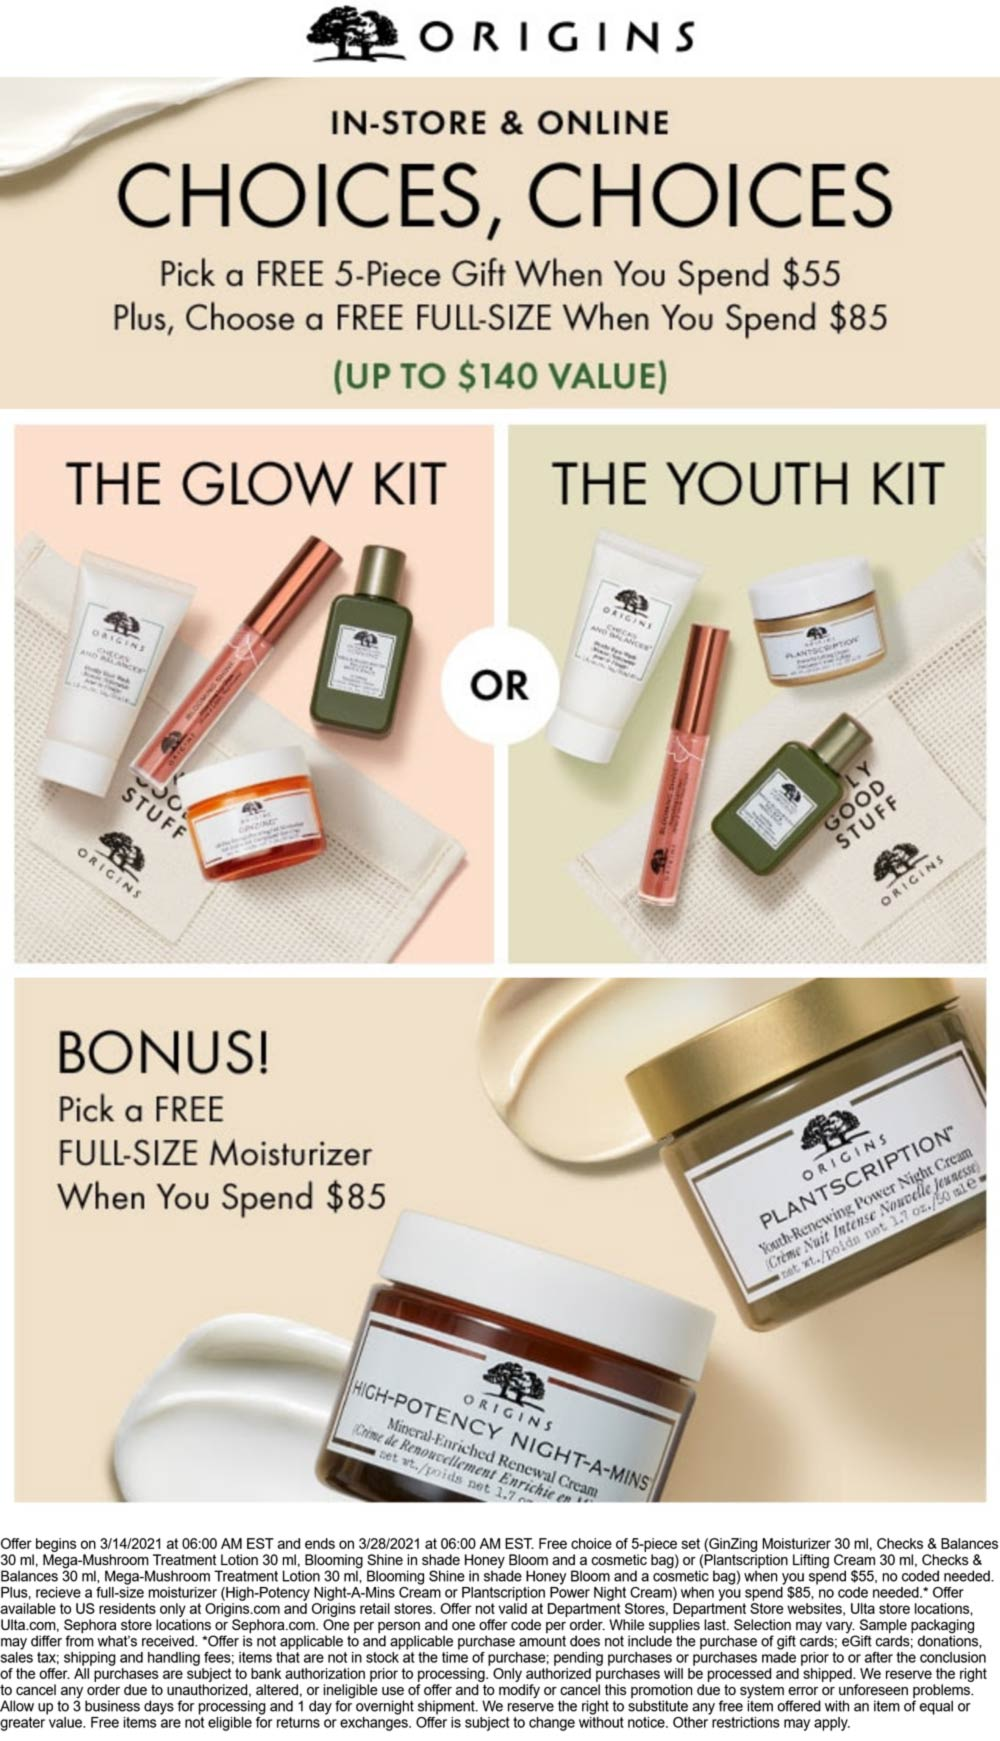 Origins stores Coupon  Free full-size moisturizer + 5pc gift on $85 spent at Origins, ditto online #origins